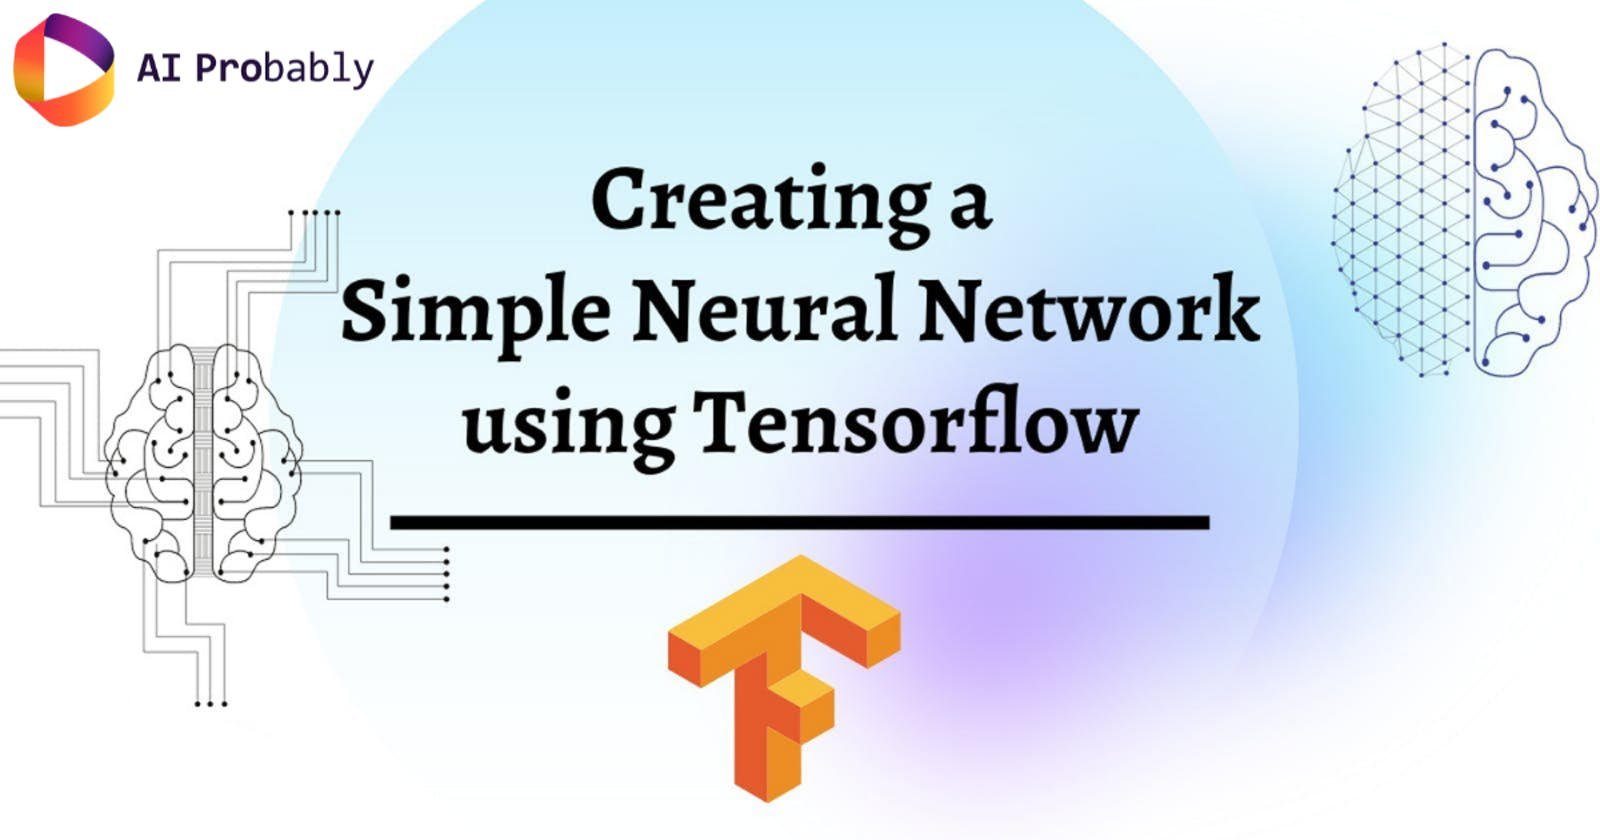 Creating a simple neural network using TensorFlow